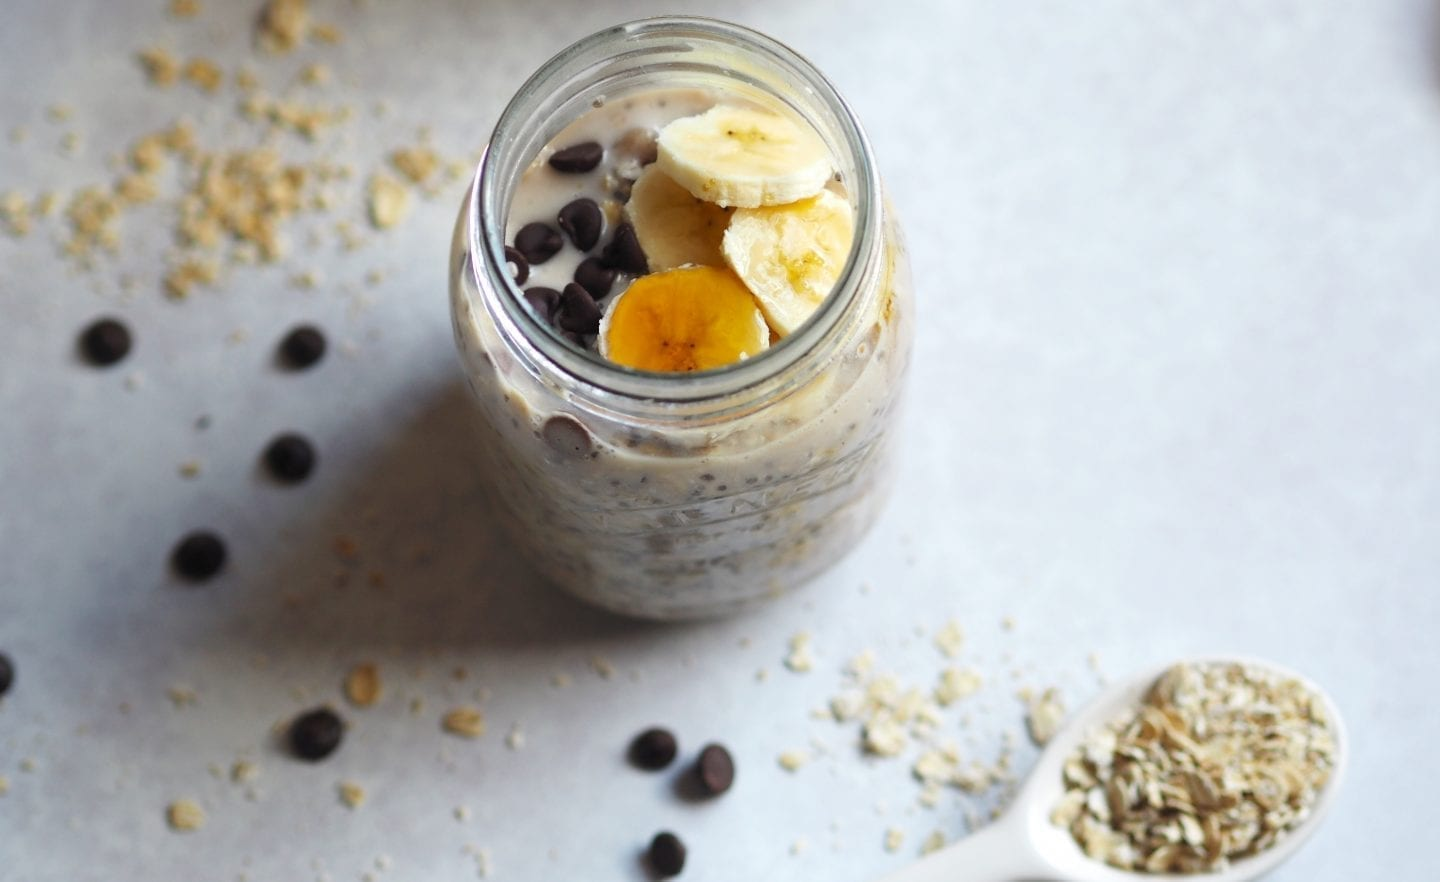 Overnight Oats Recipe - This #banana & #chocolate #chip #overnight #oats #recipe is the perfect grab and go #breakfast. Plus it is #gluten & #dairy #free. #vegan too